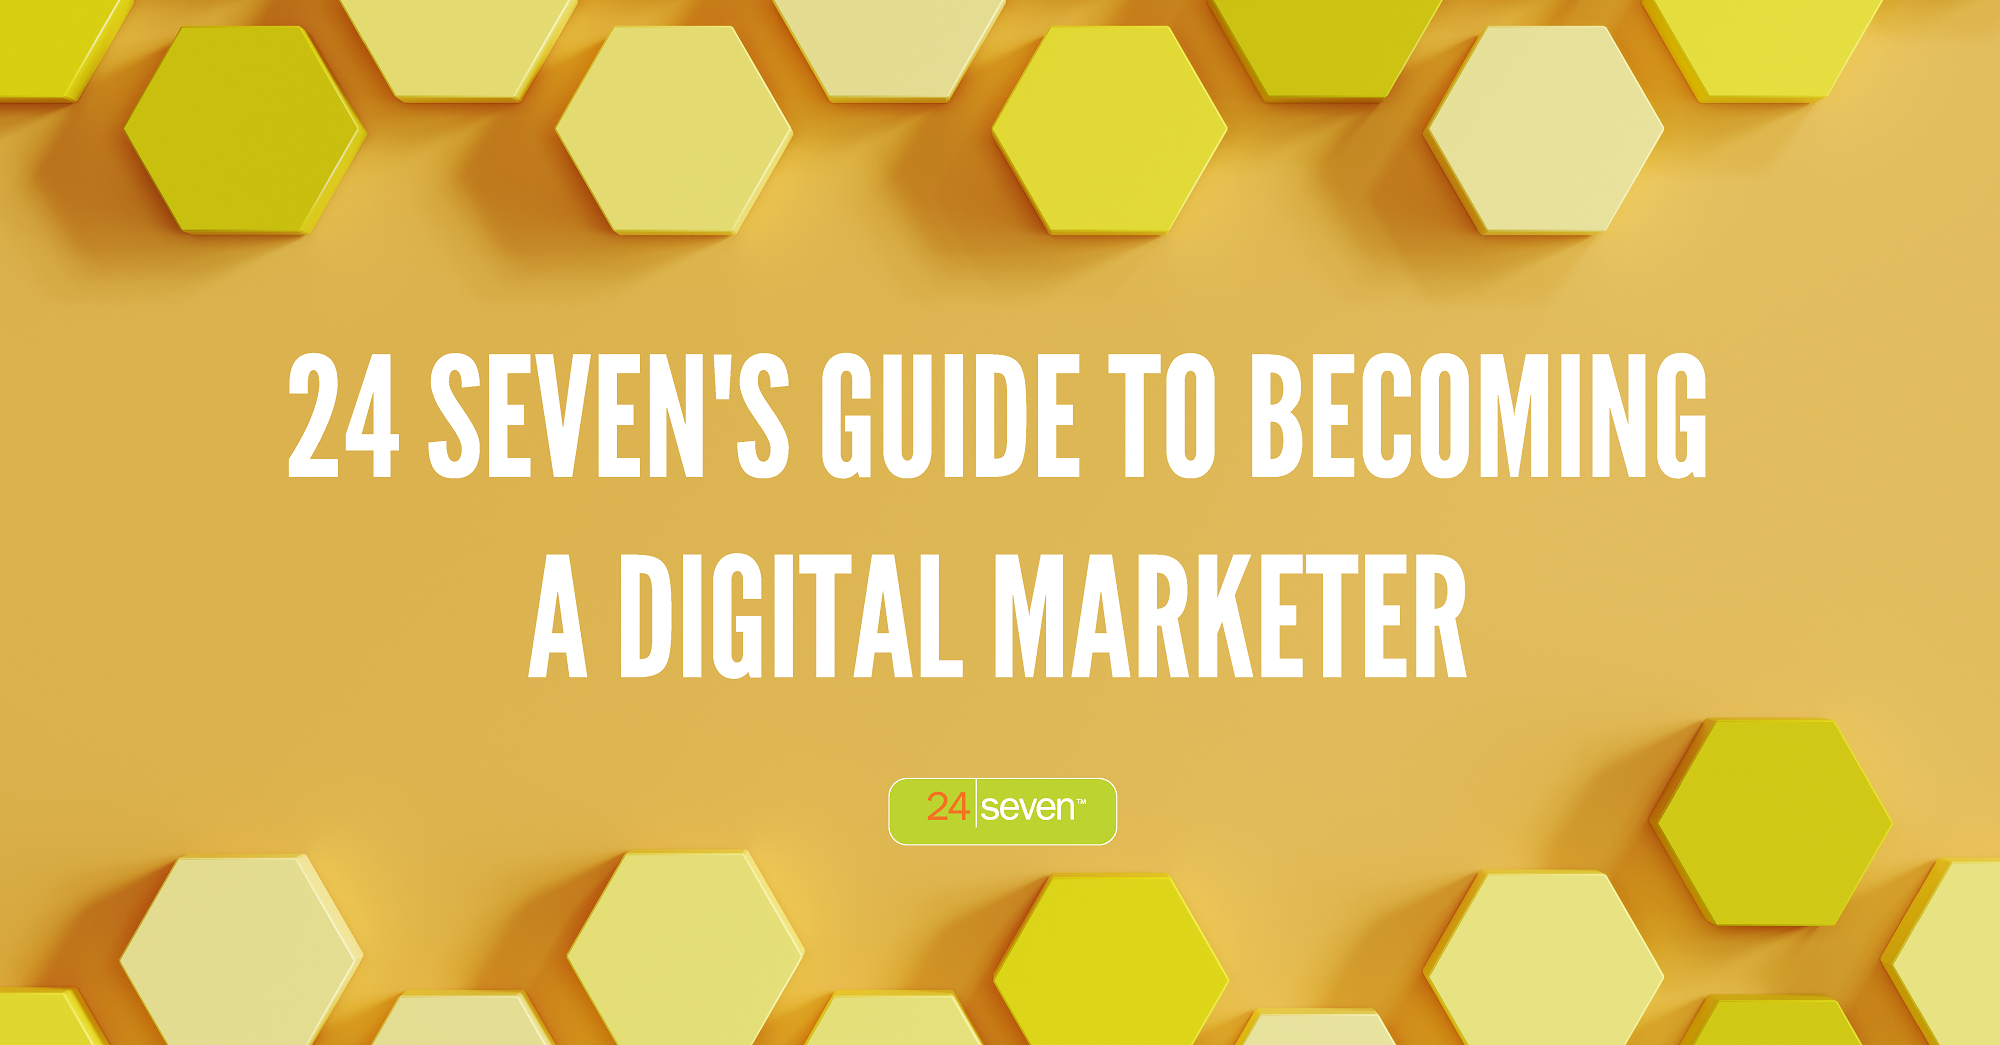 24 Sevens Guide To Becoming A Digital Marketer